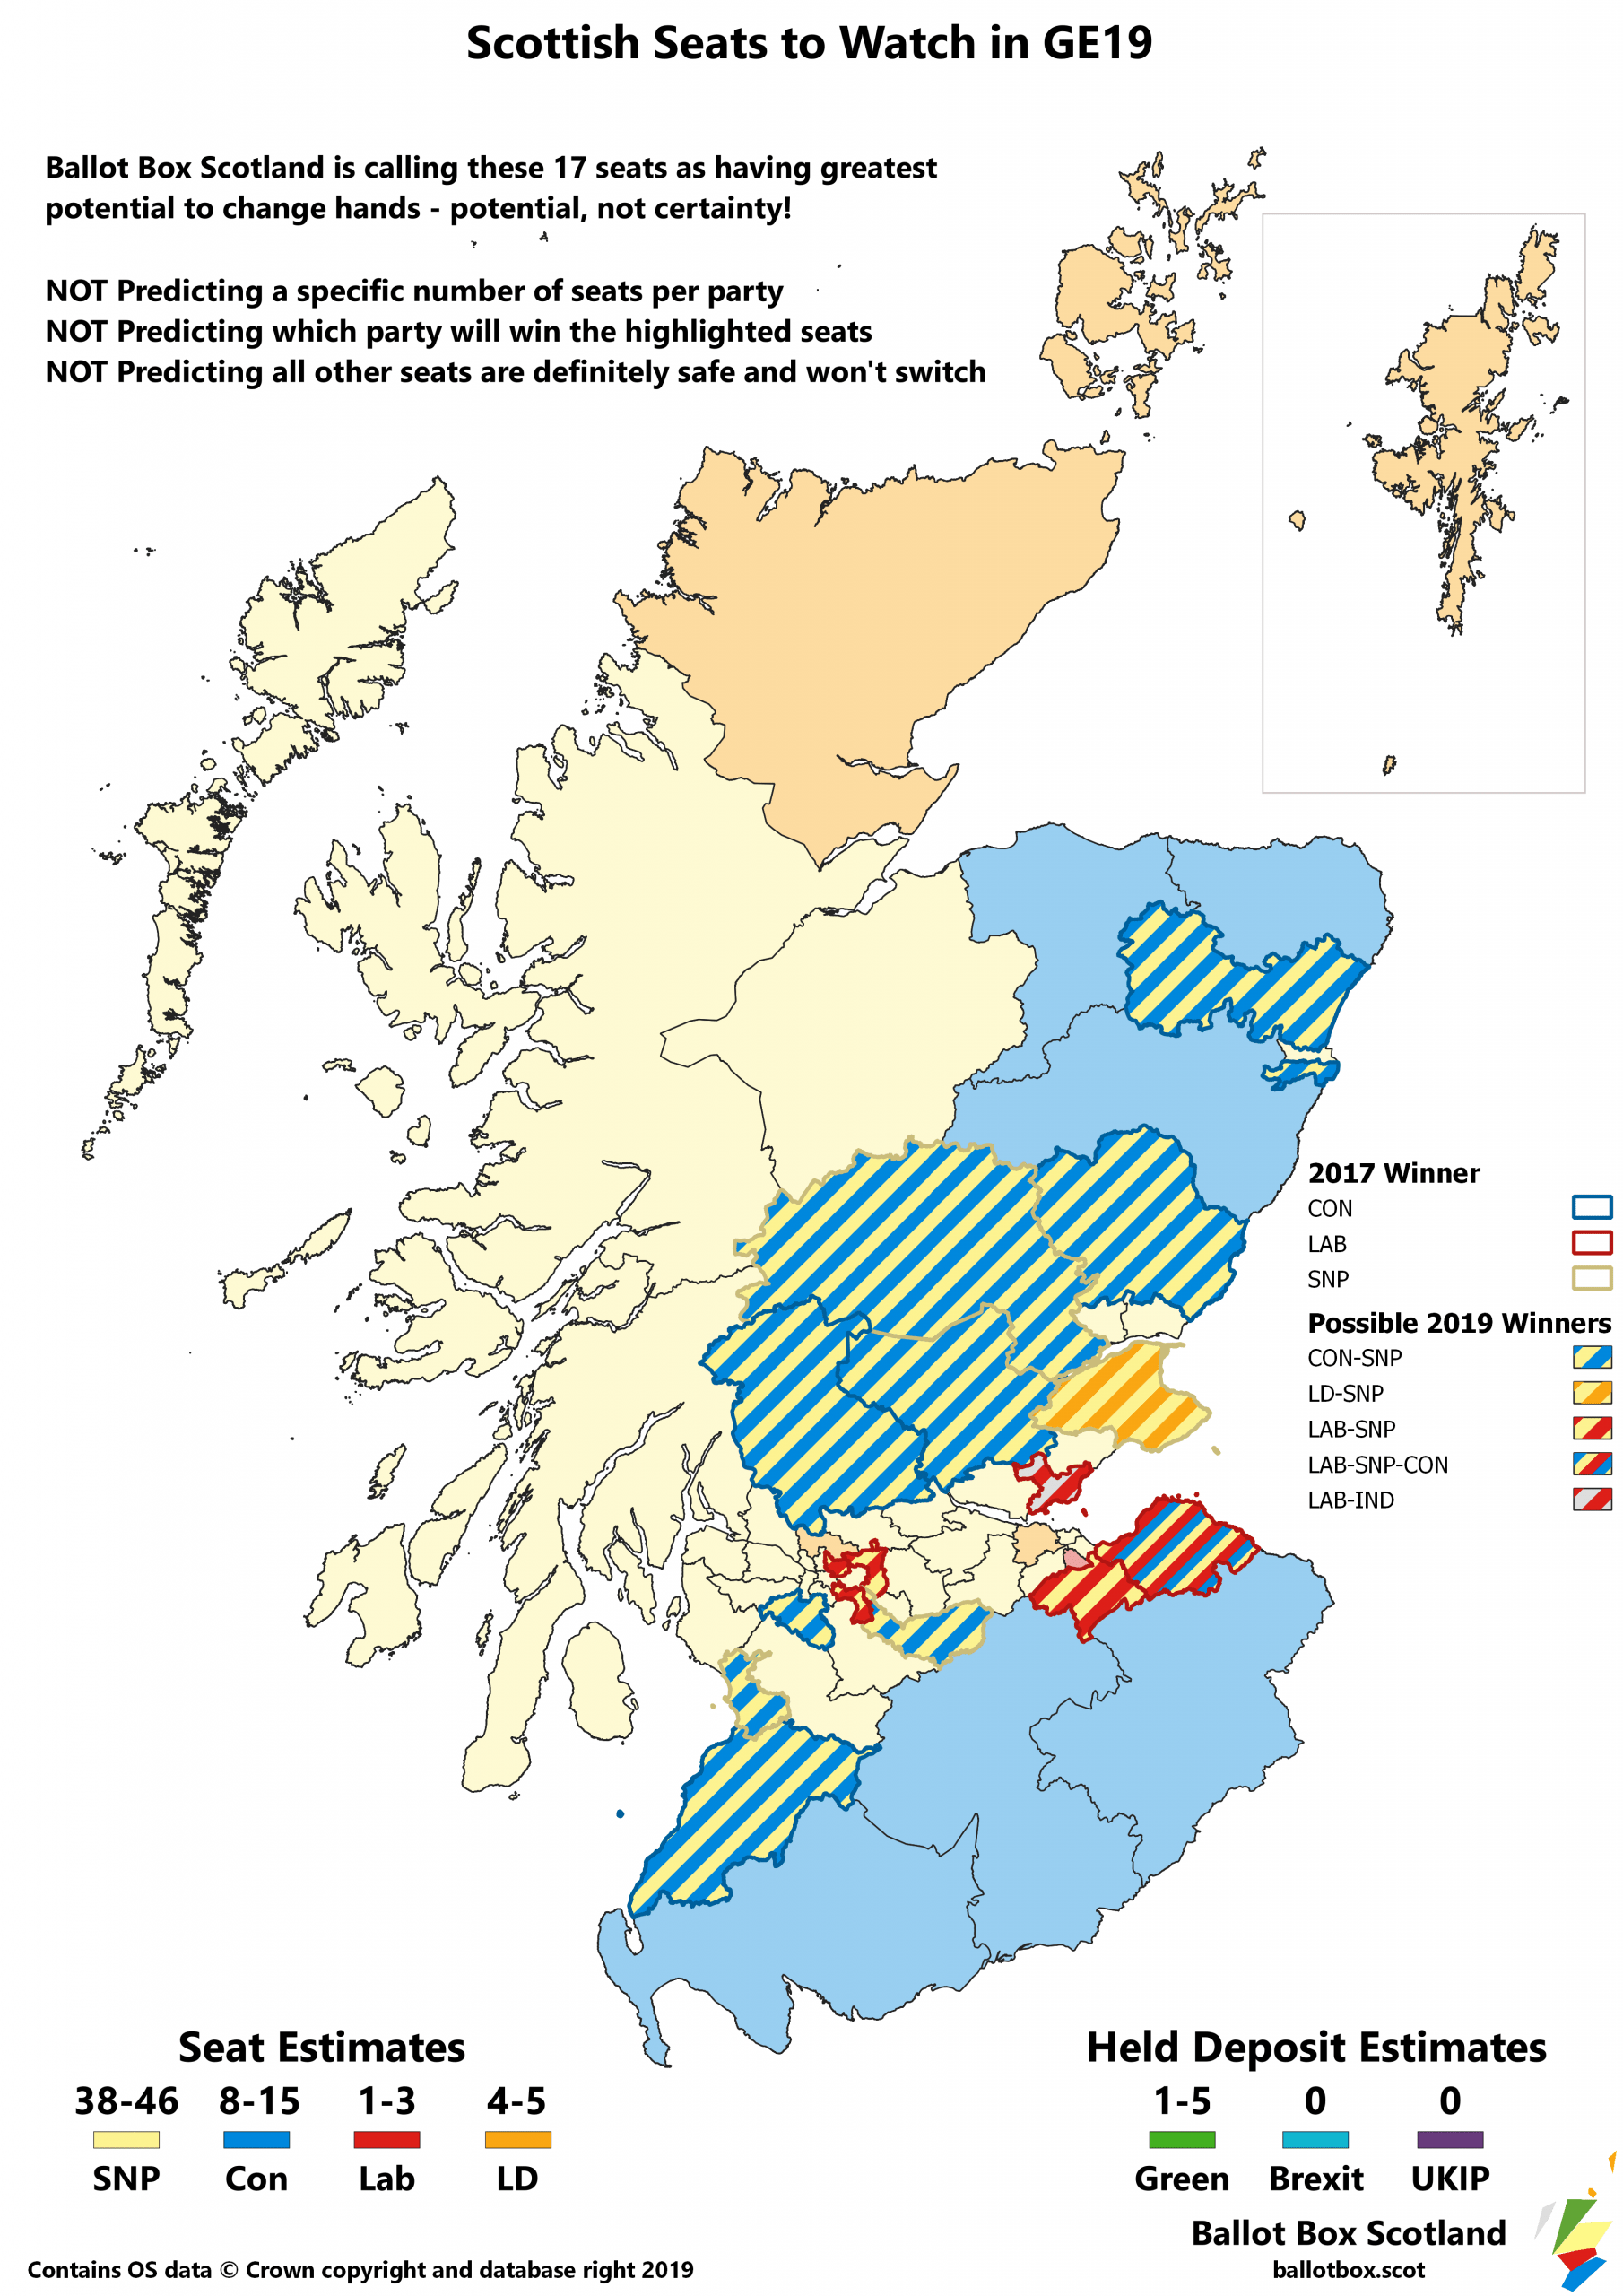 Seats in Contention Coloured Borders